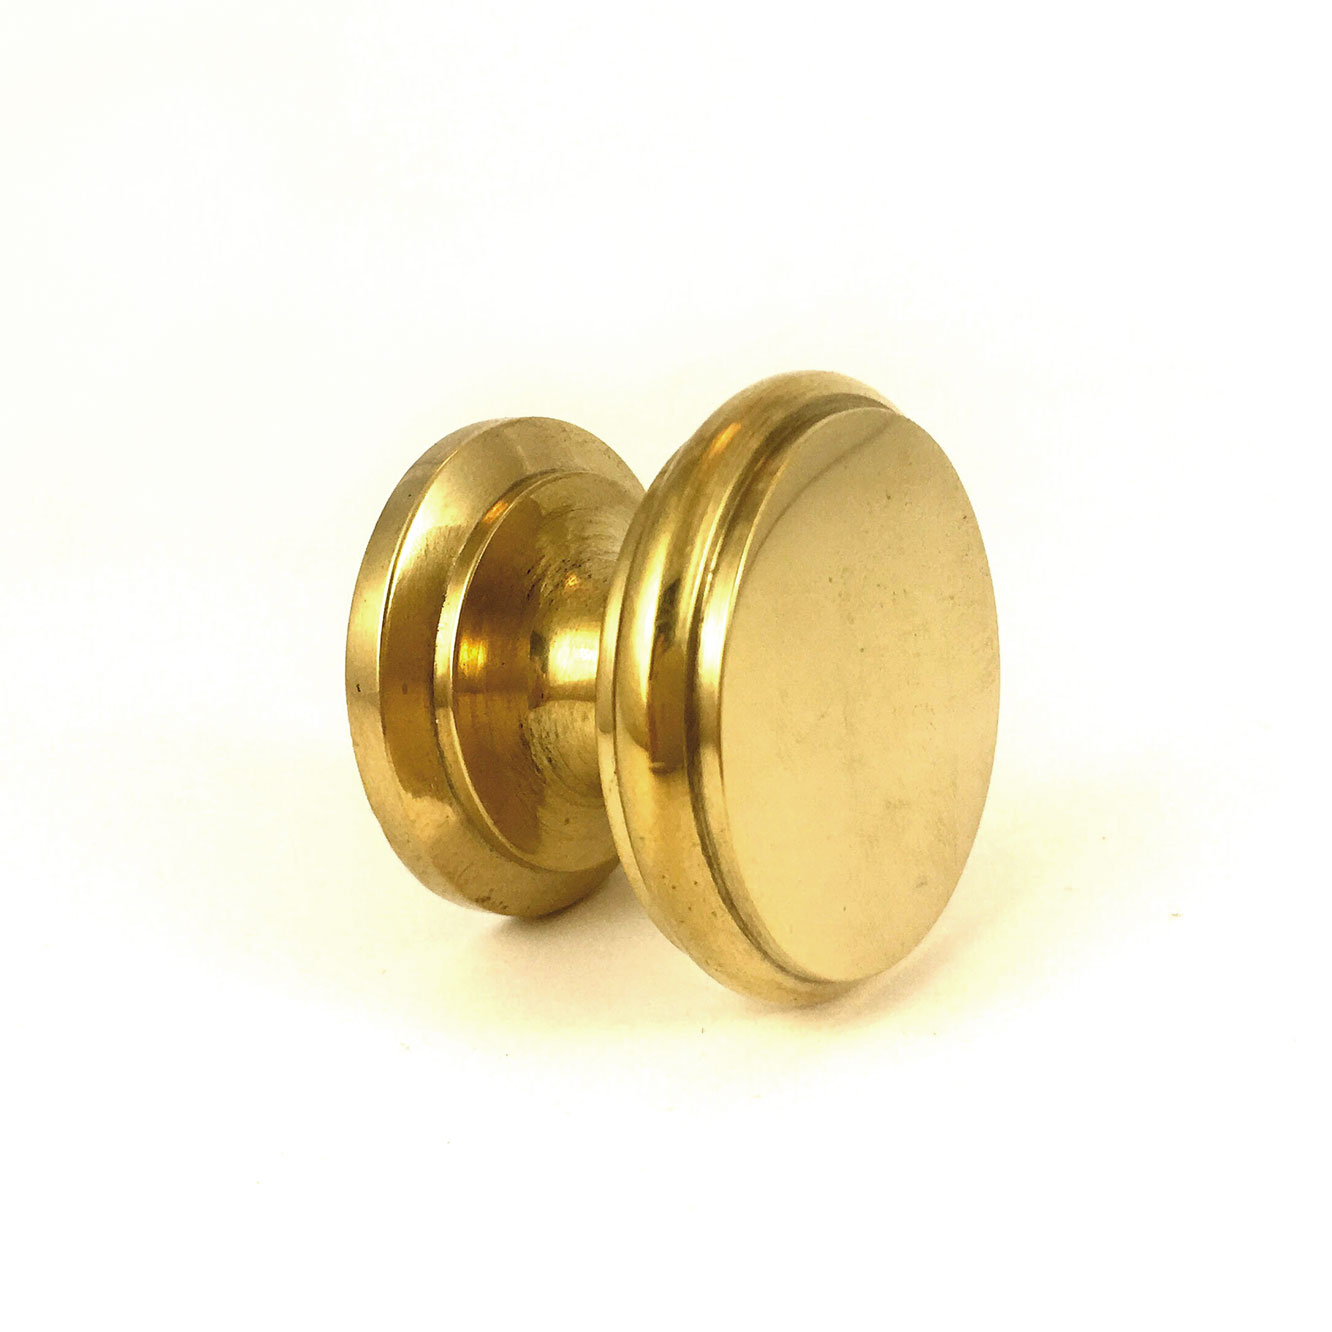 Gold Round Solid Brass Knob Cabinet Handles Amp Kitchen